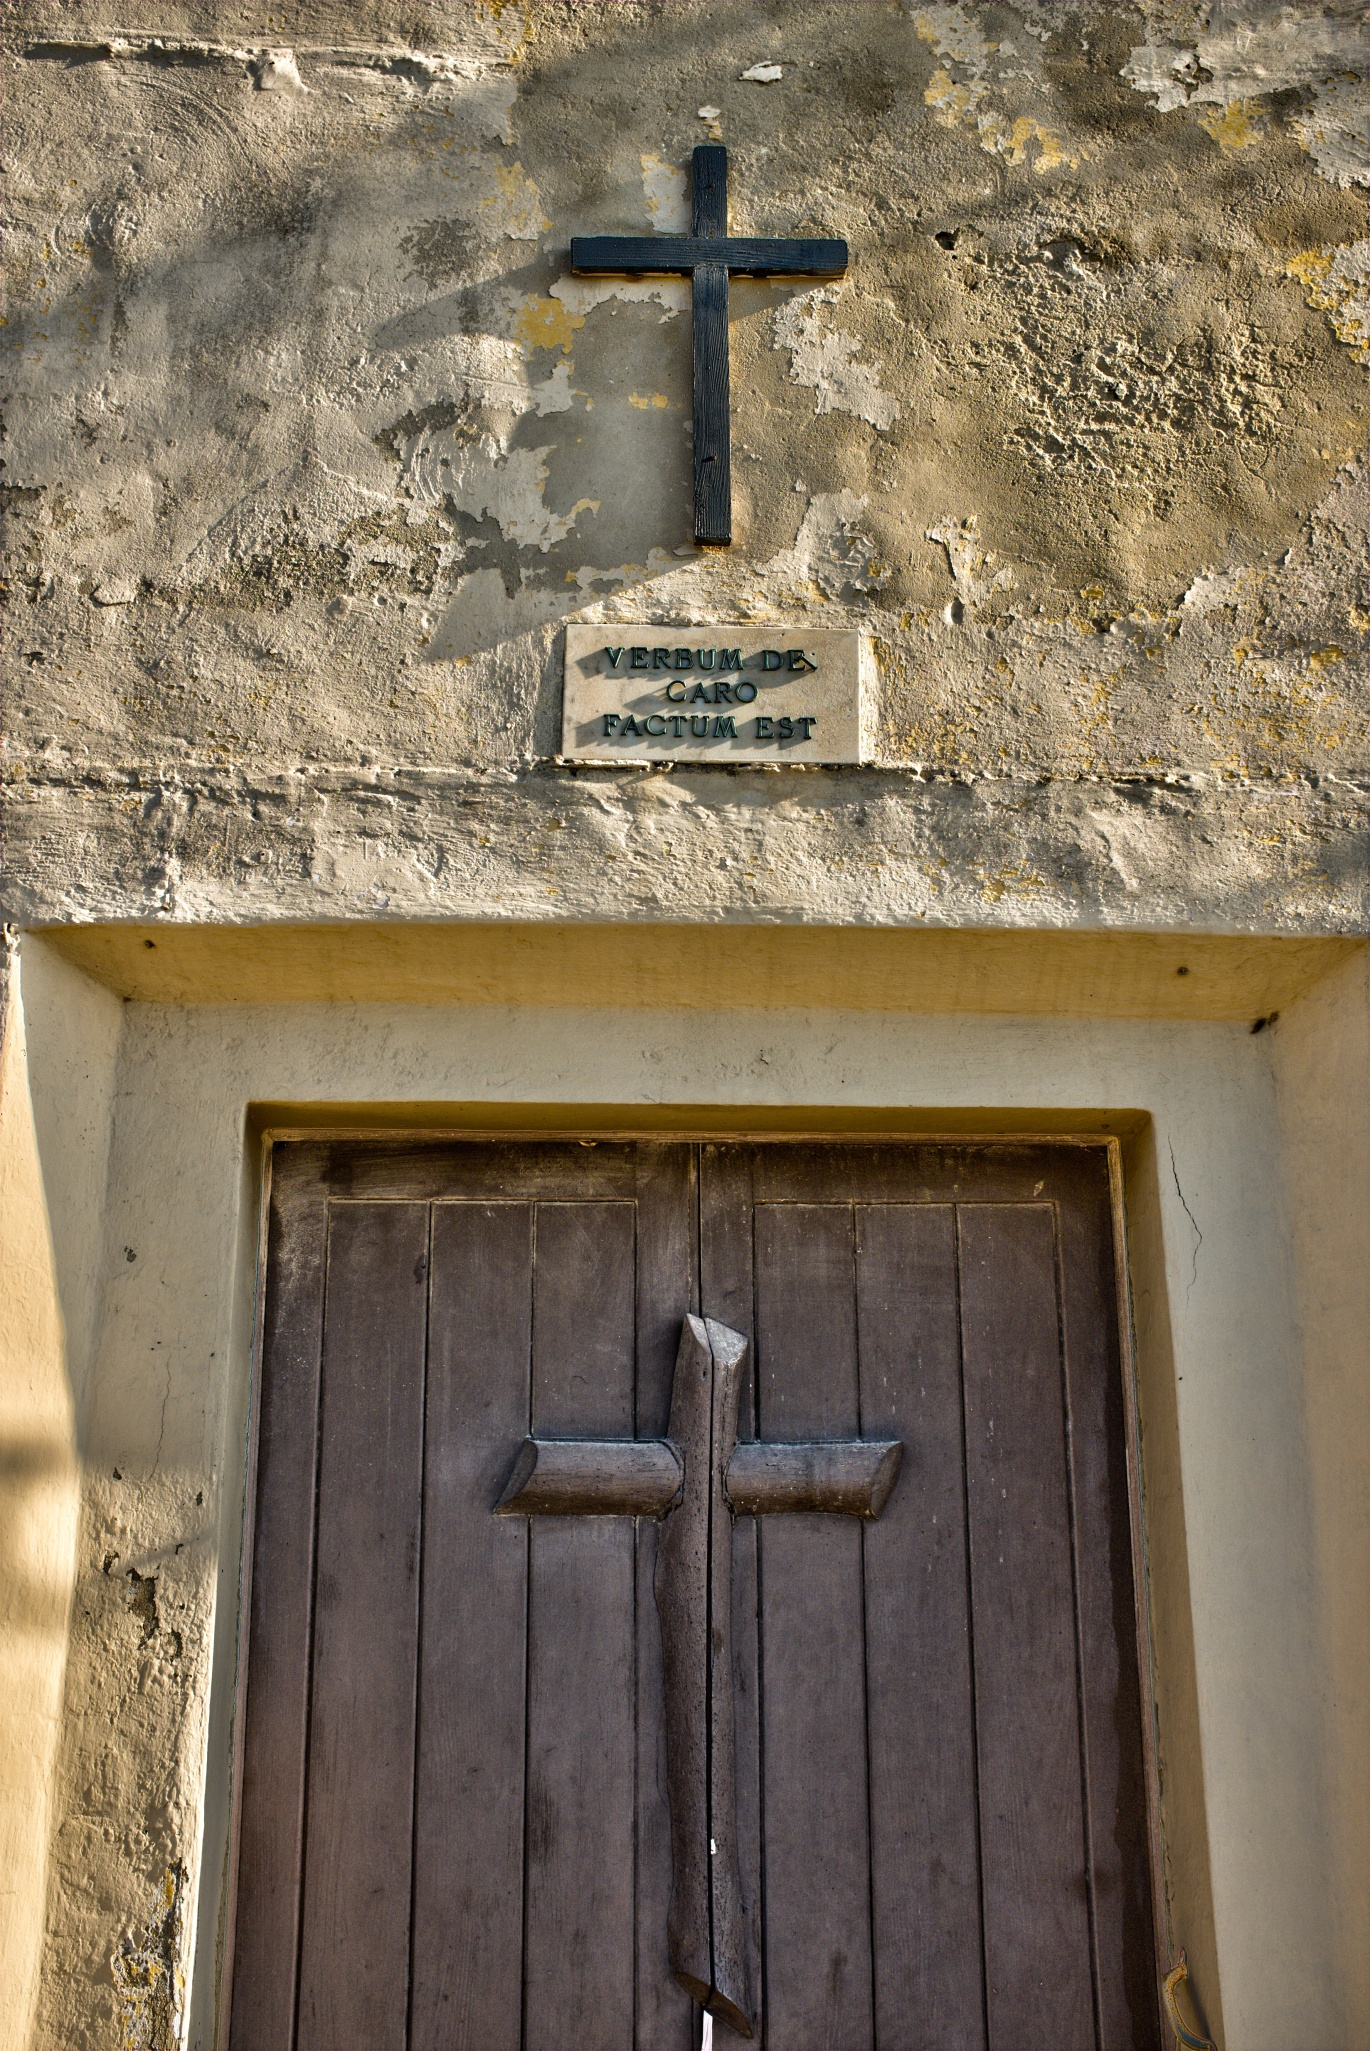 Malta rooted in Christianity David Bugeja (c) 2014